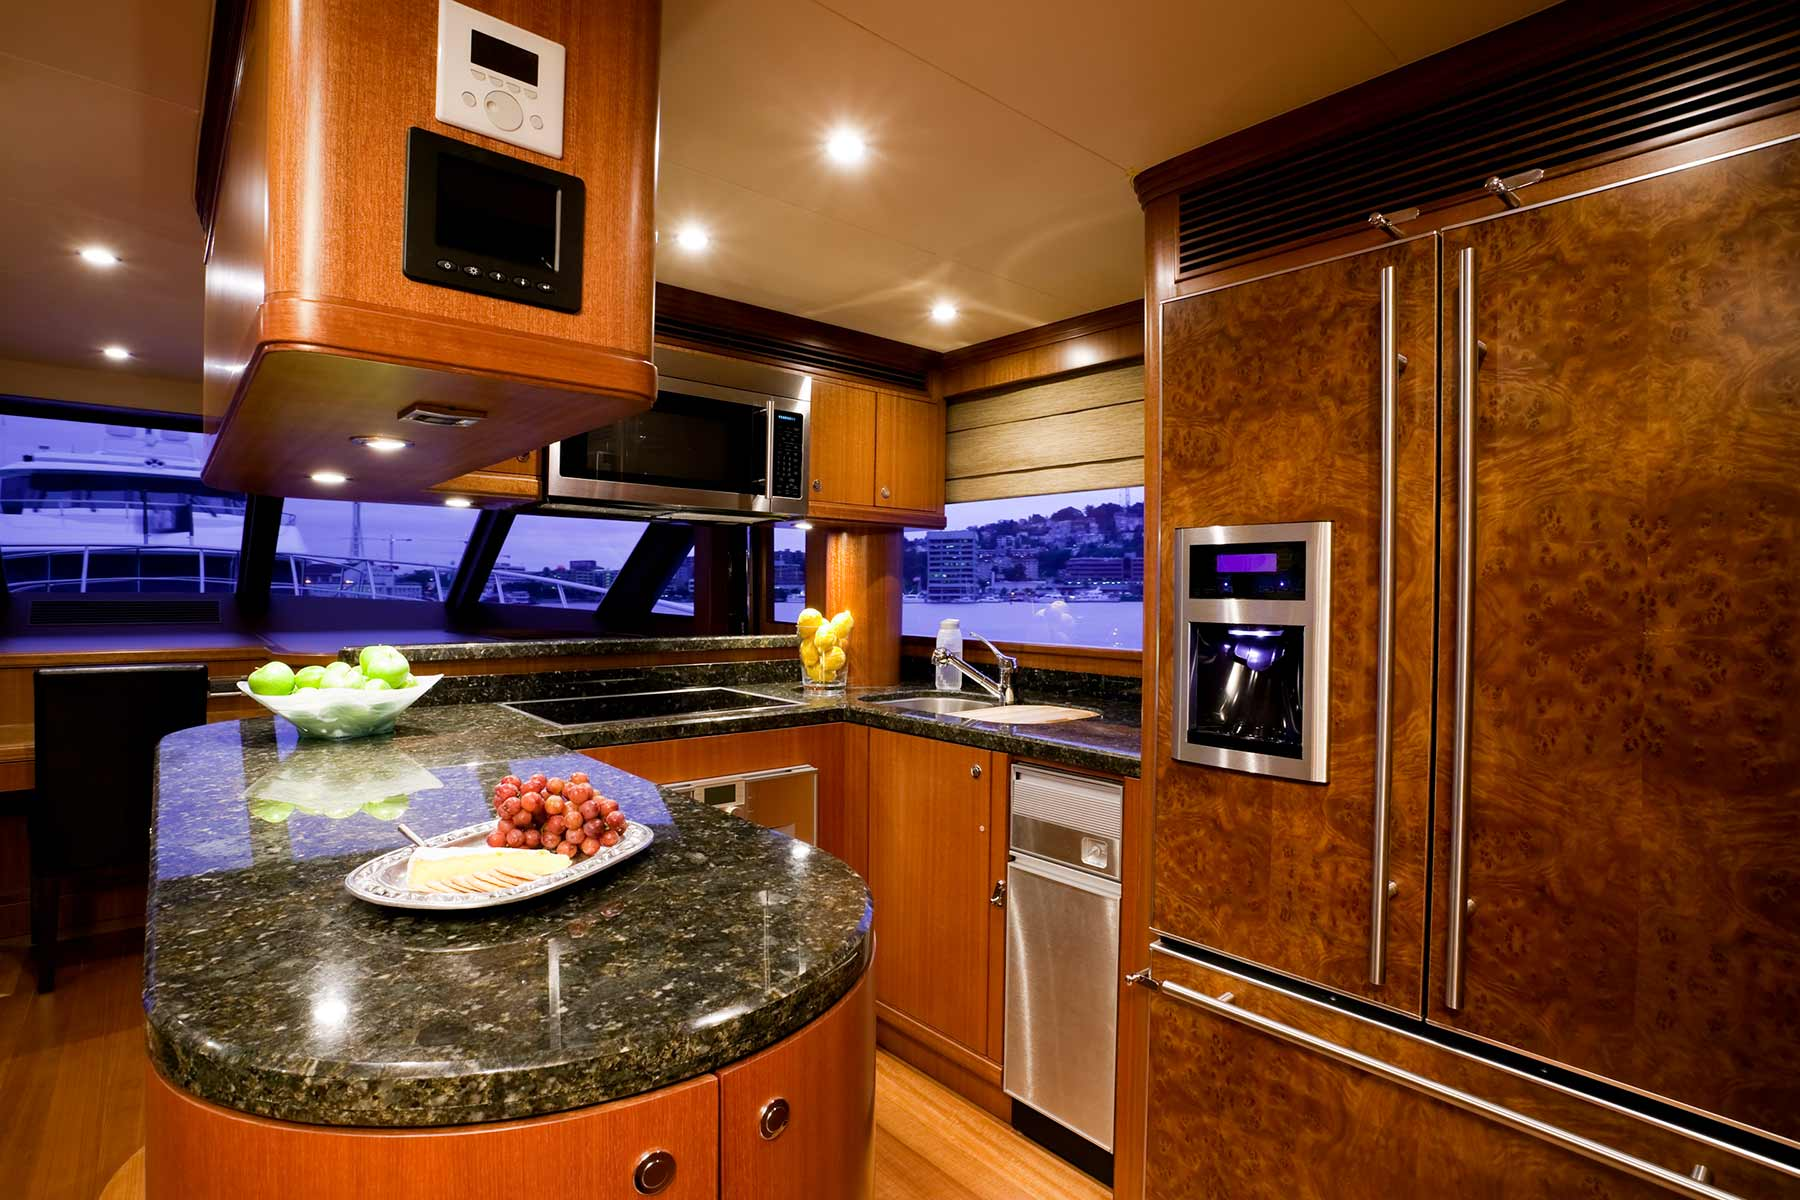 A brilliant granite kitchen aboard a private mega yacht sea vessel